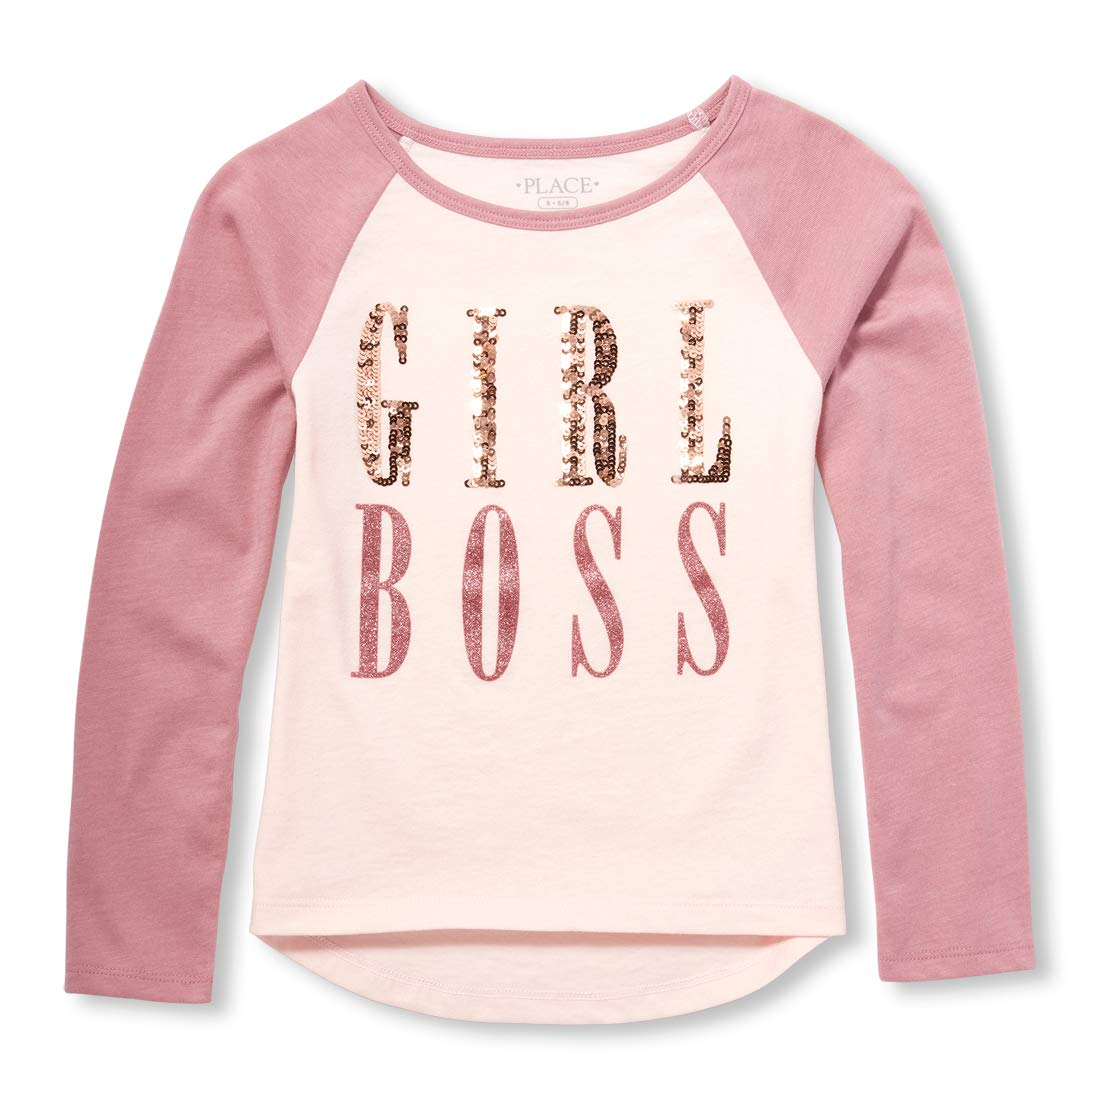 The Children's Place Big Girls Long Sleeve Graphic Tops The Children' s Place